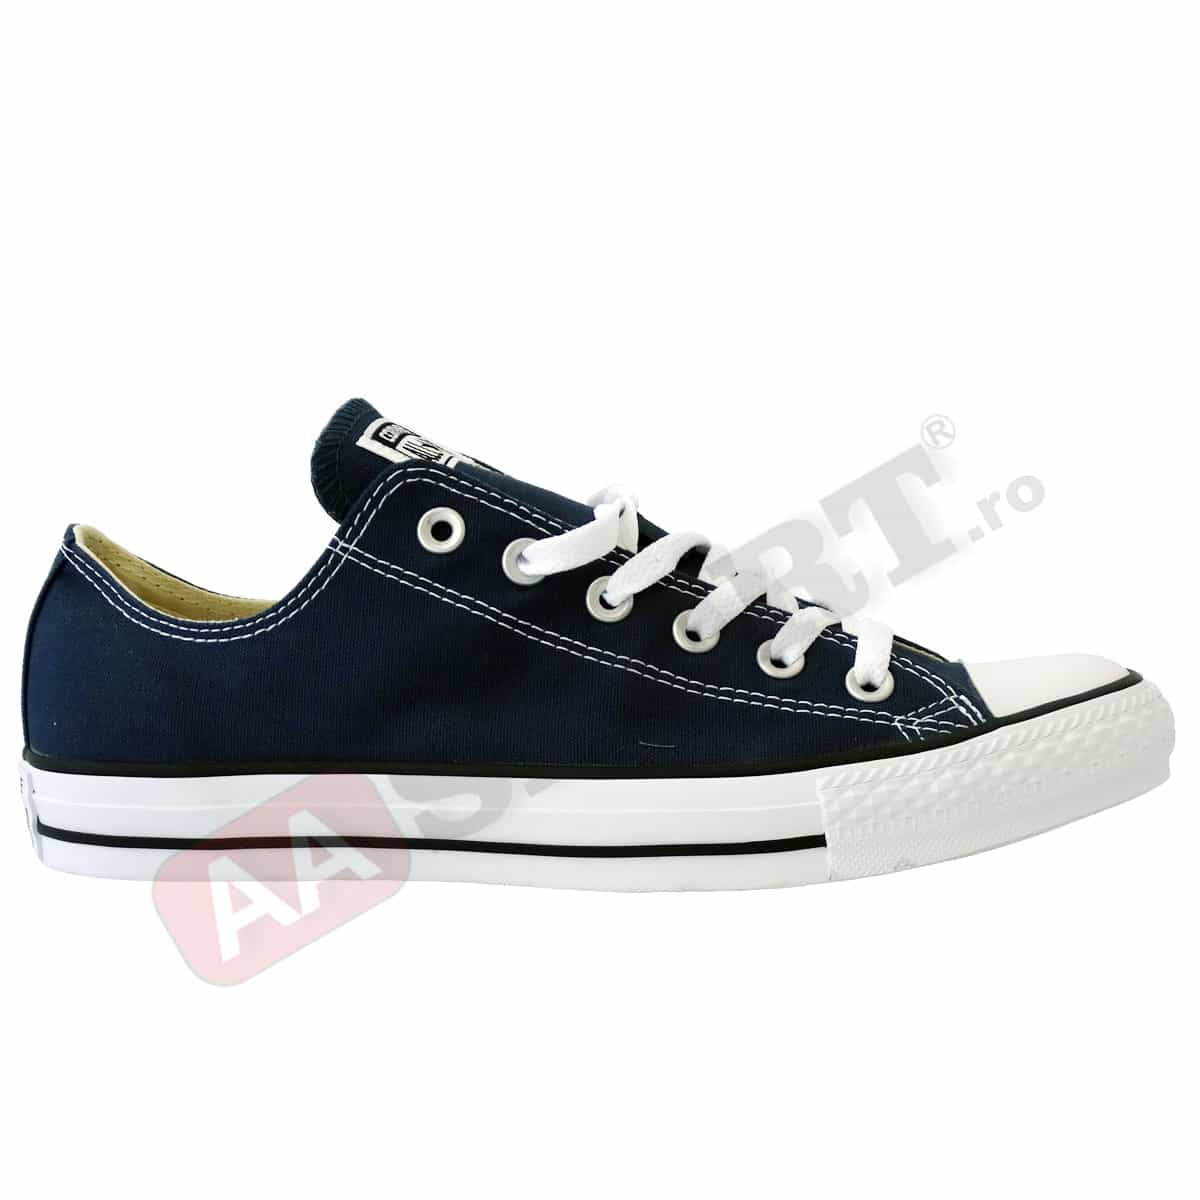 TENISI CONVERSE ALL STAR OX (F) - M9697C 1